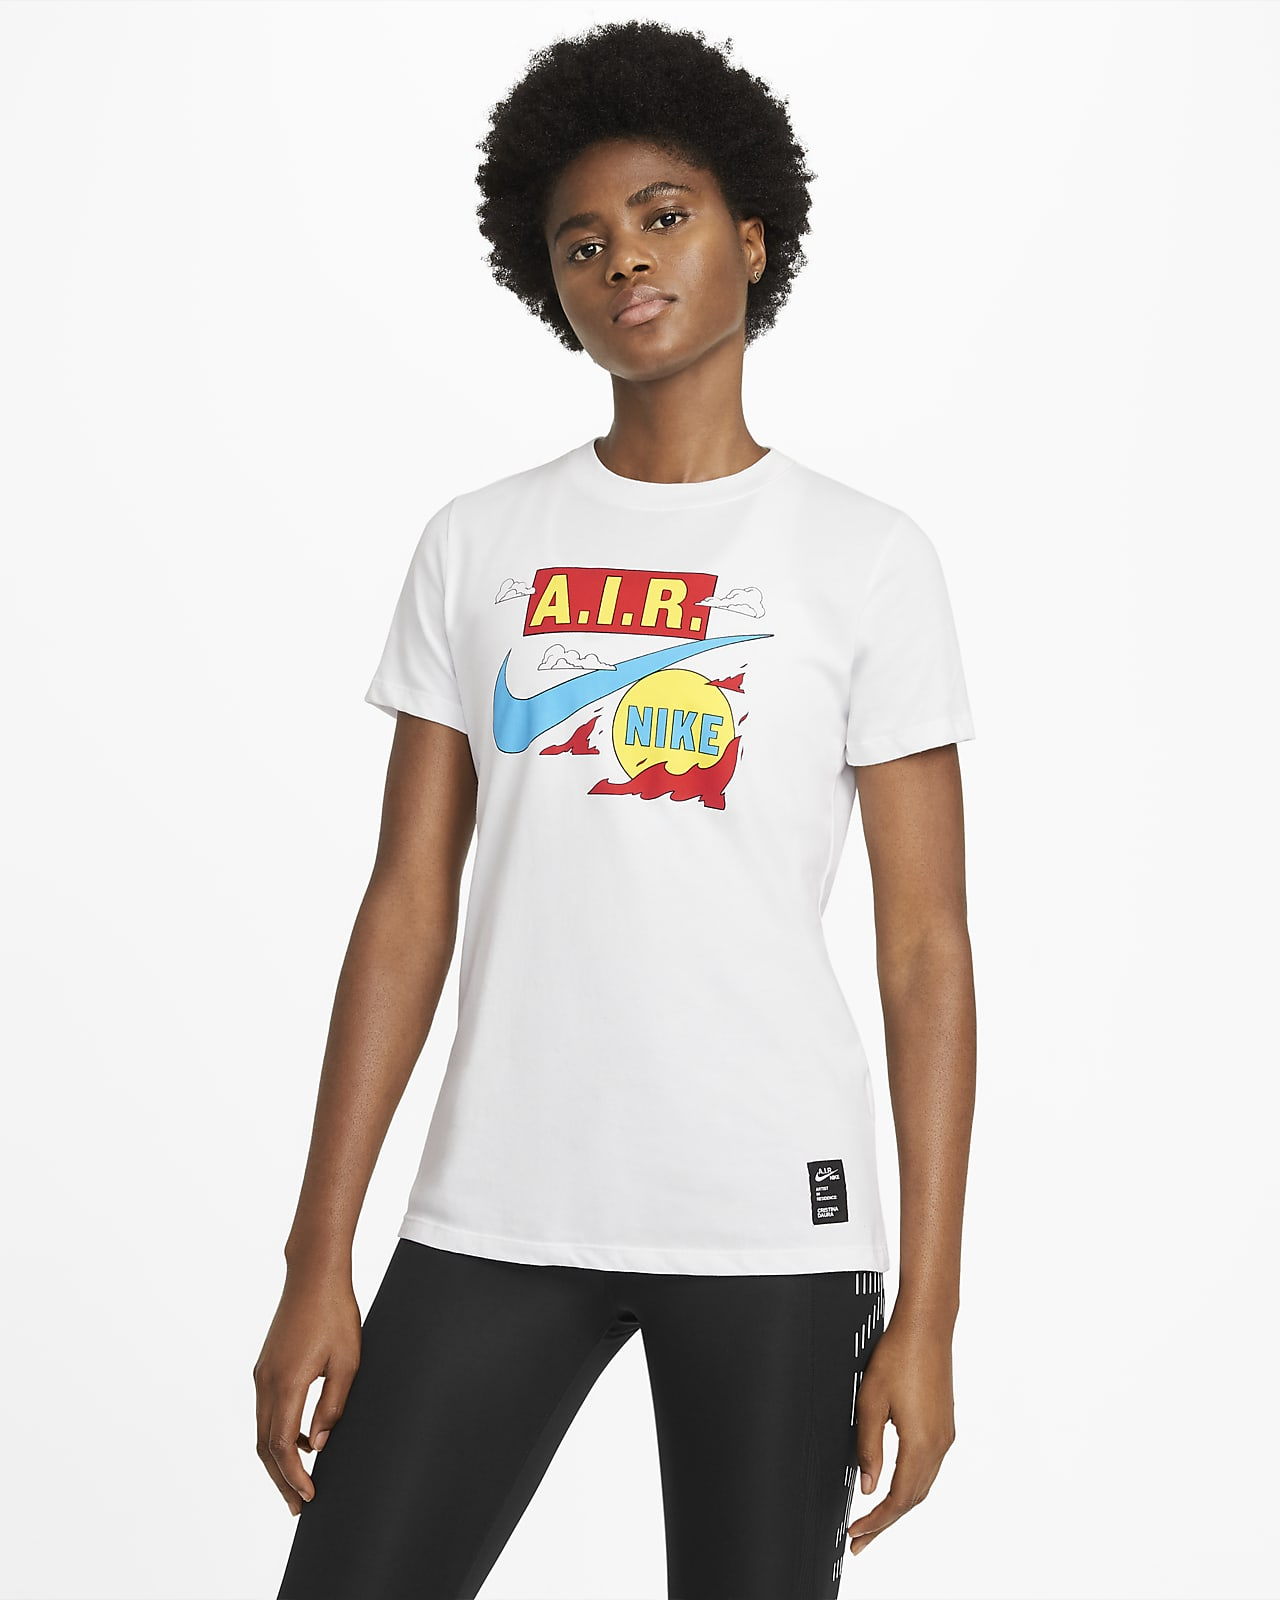 Nike Dri-FIT A.I.R. Cristina Daura Women's Short-Sleeve T-Shirt